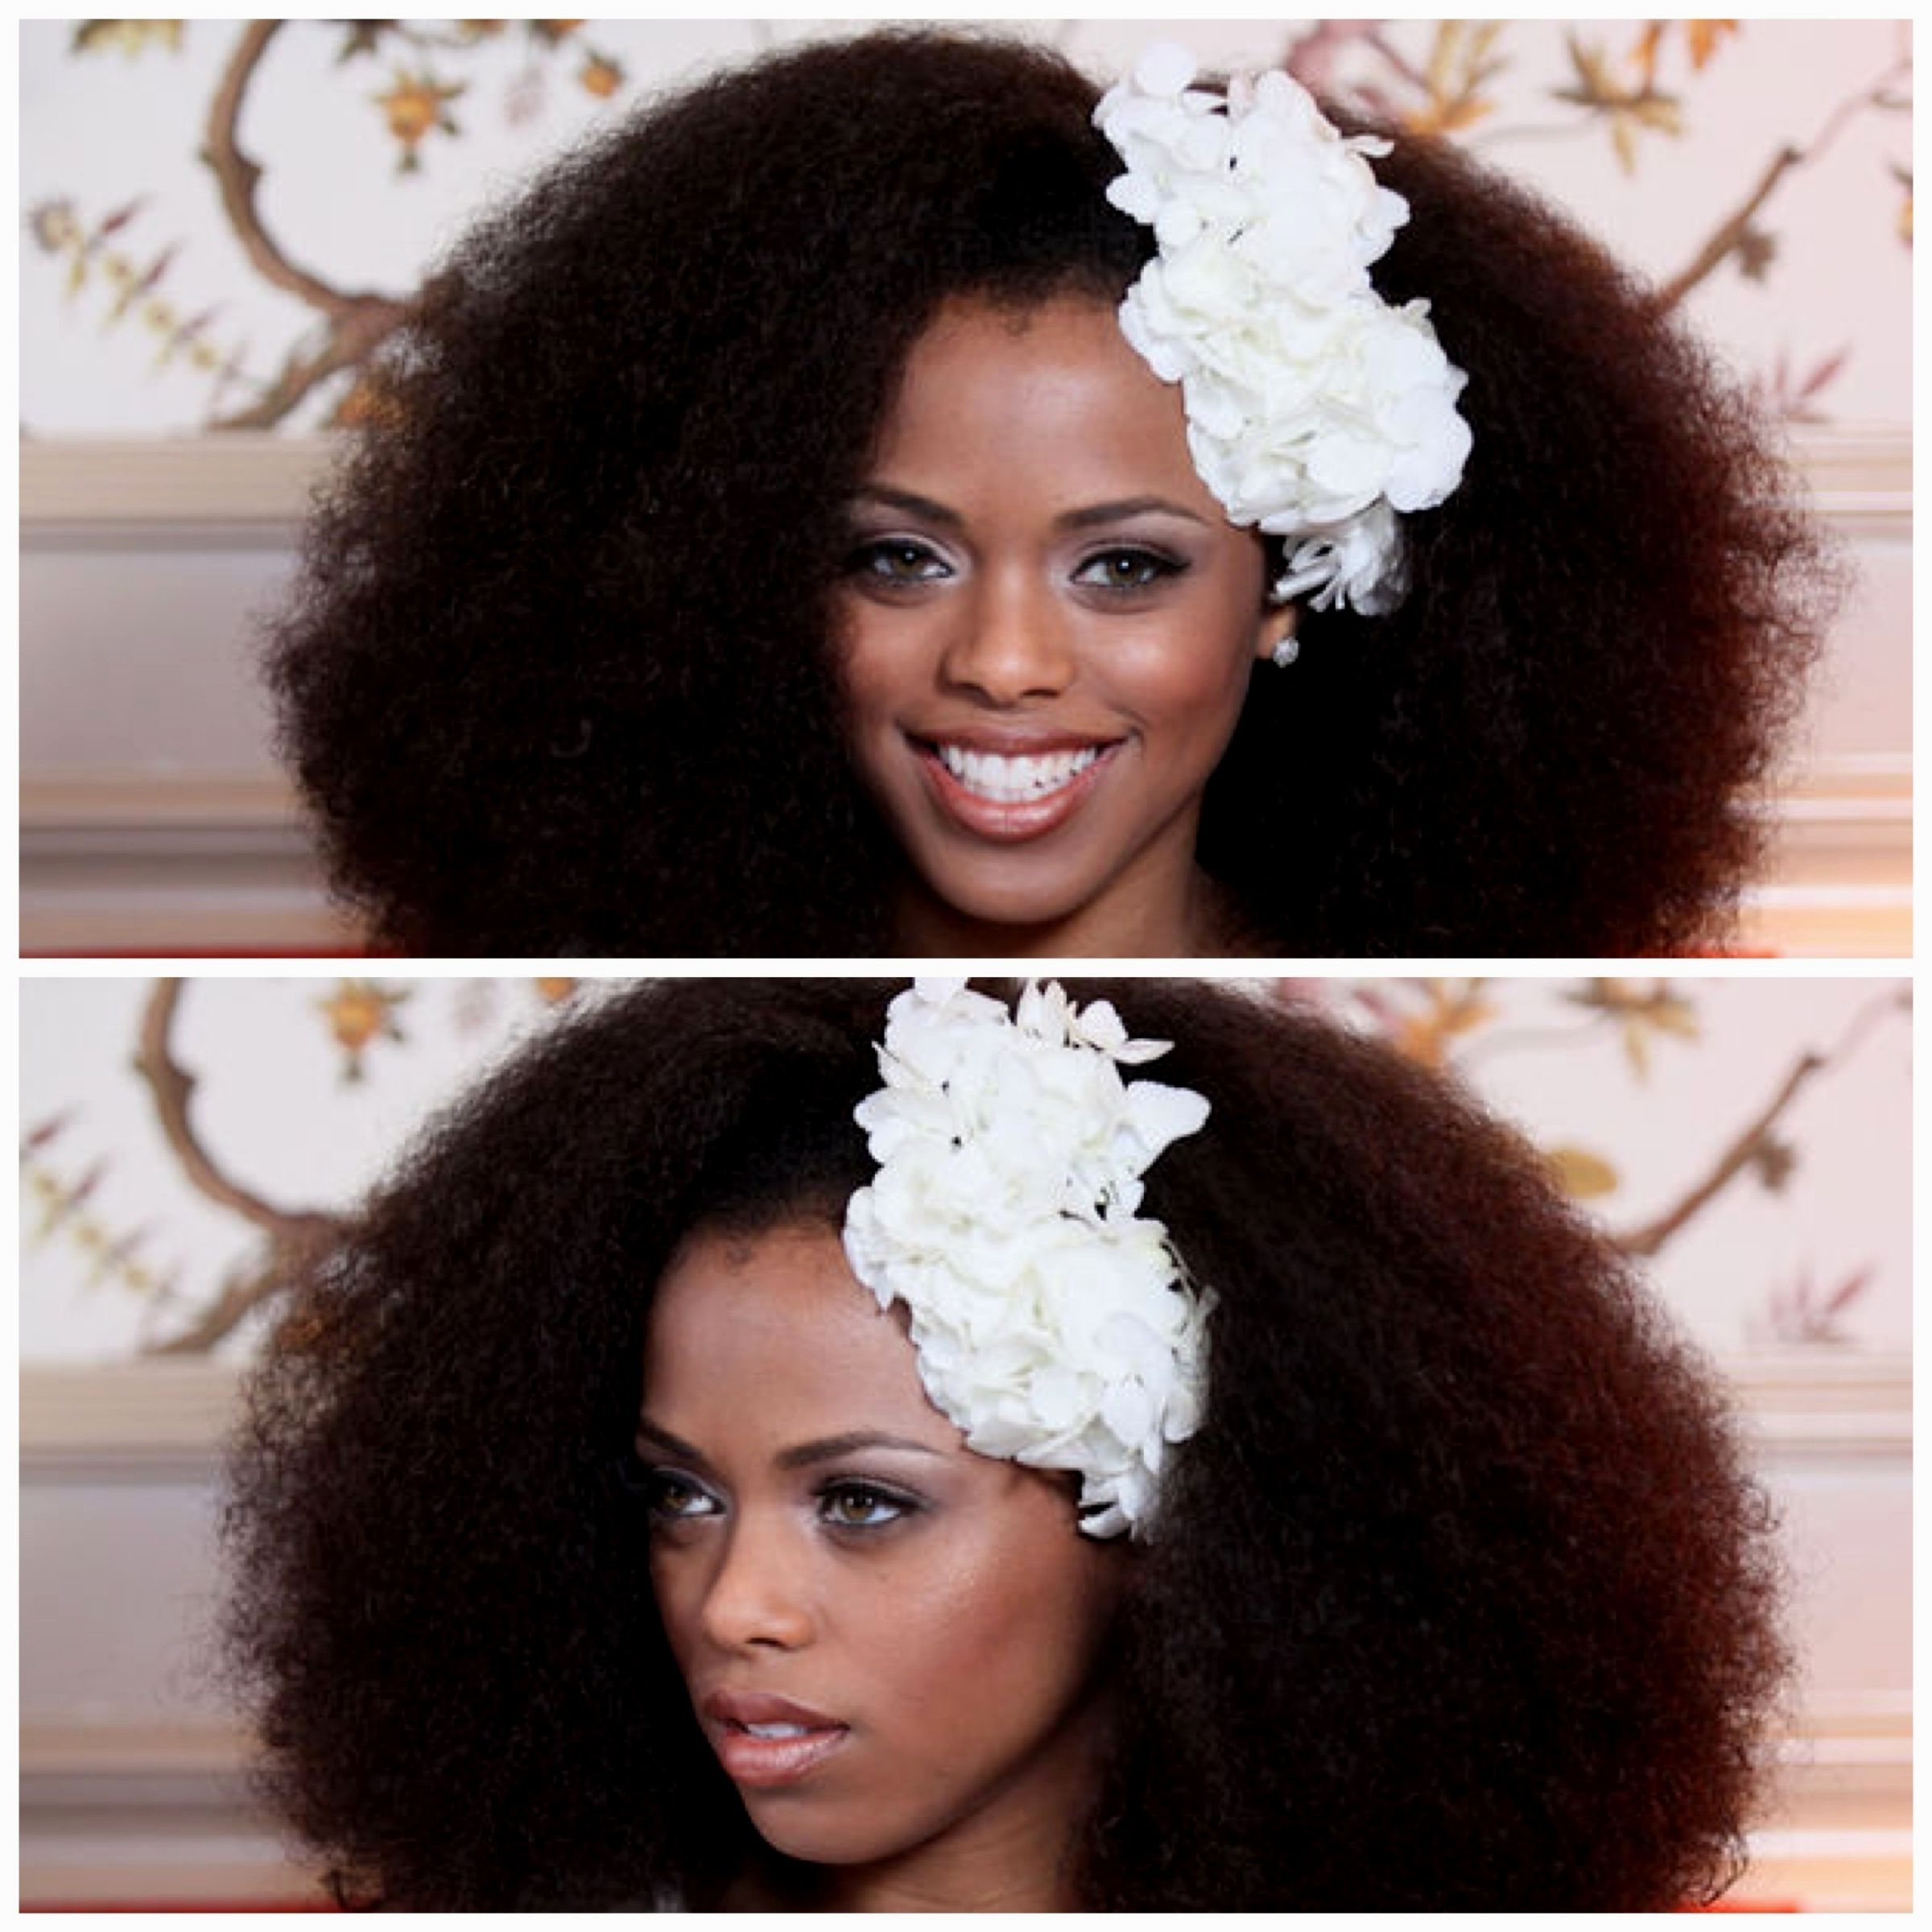 Afro Hair Wedding Hairstyles Hairstyles Archives – Page 30 Of 47 Within Most Up To Date Wedding Hairstyles For Afro Hair (View 7 of 15)